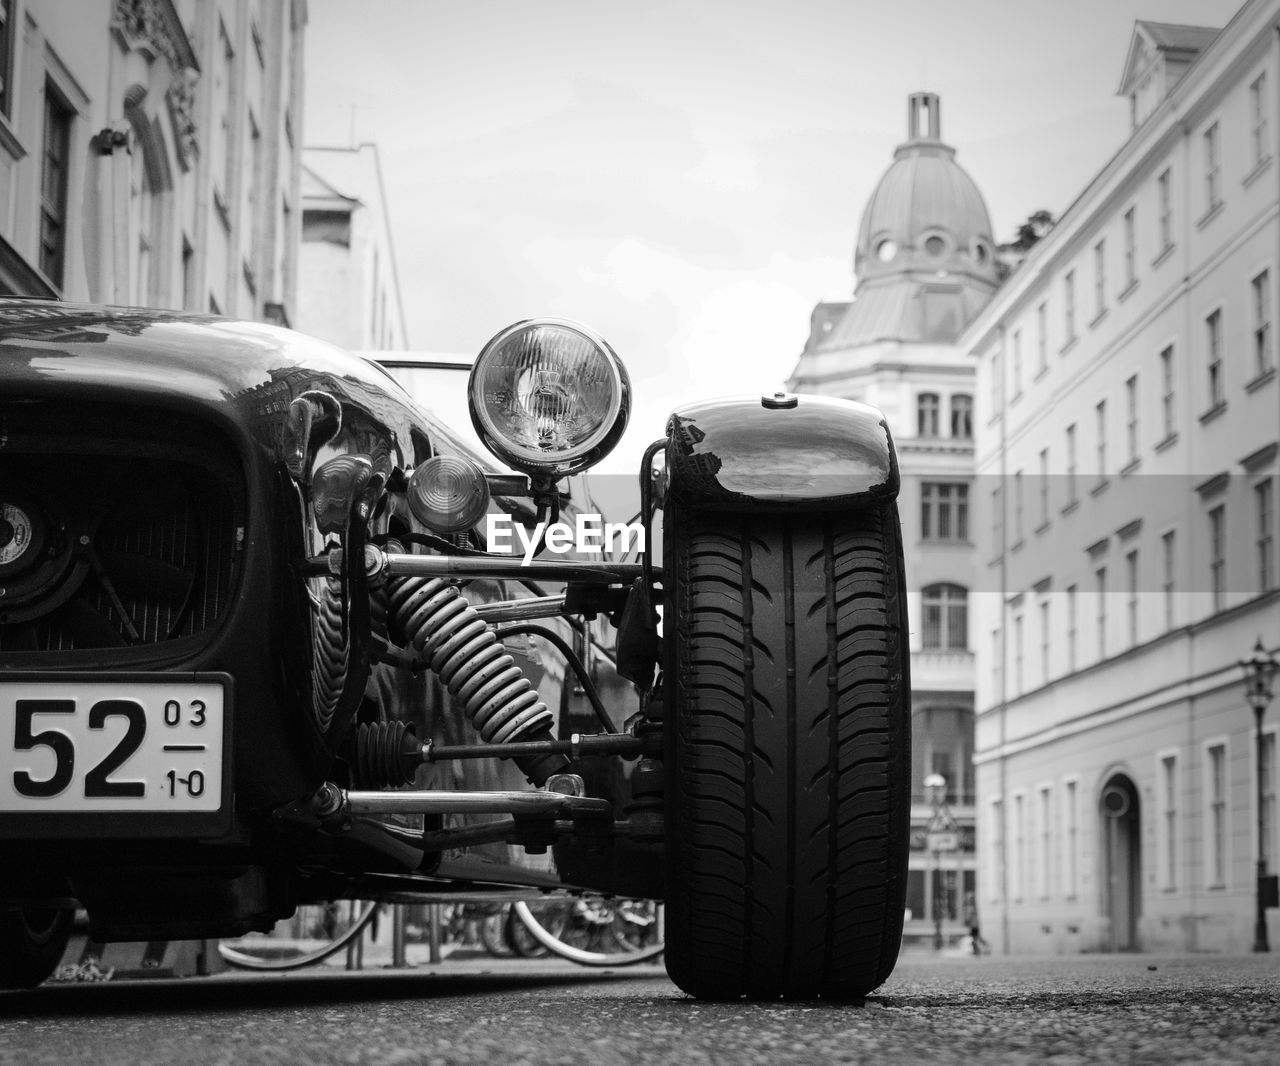 mode of transport, transportation, day, outdoors, land vehicle, building exterior, focus on foreground, built structure, car, no people, architecture, sky, close-up, city